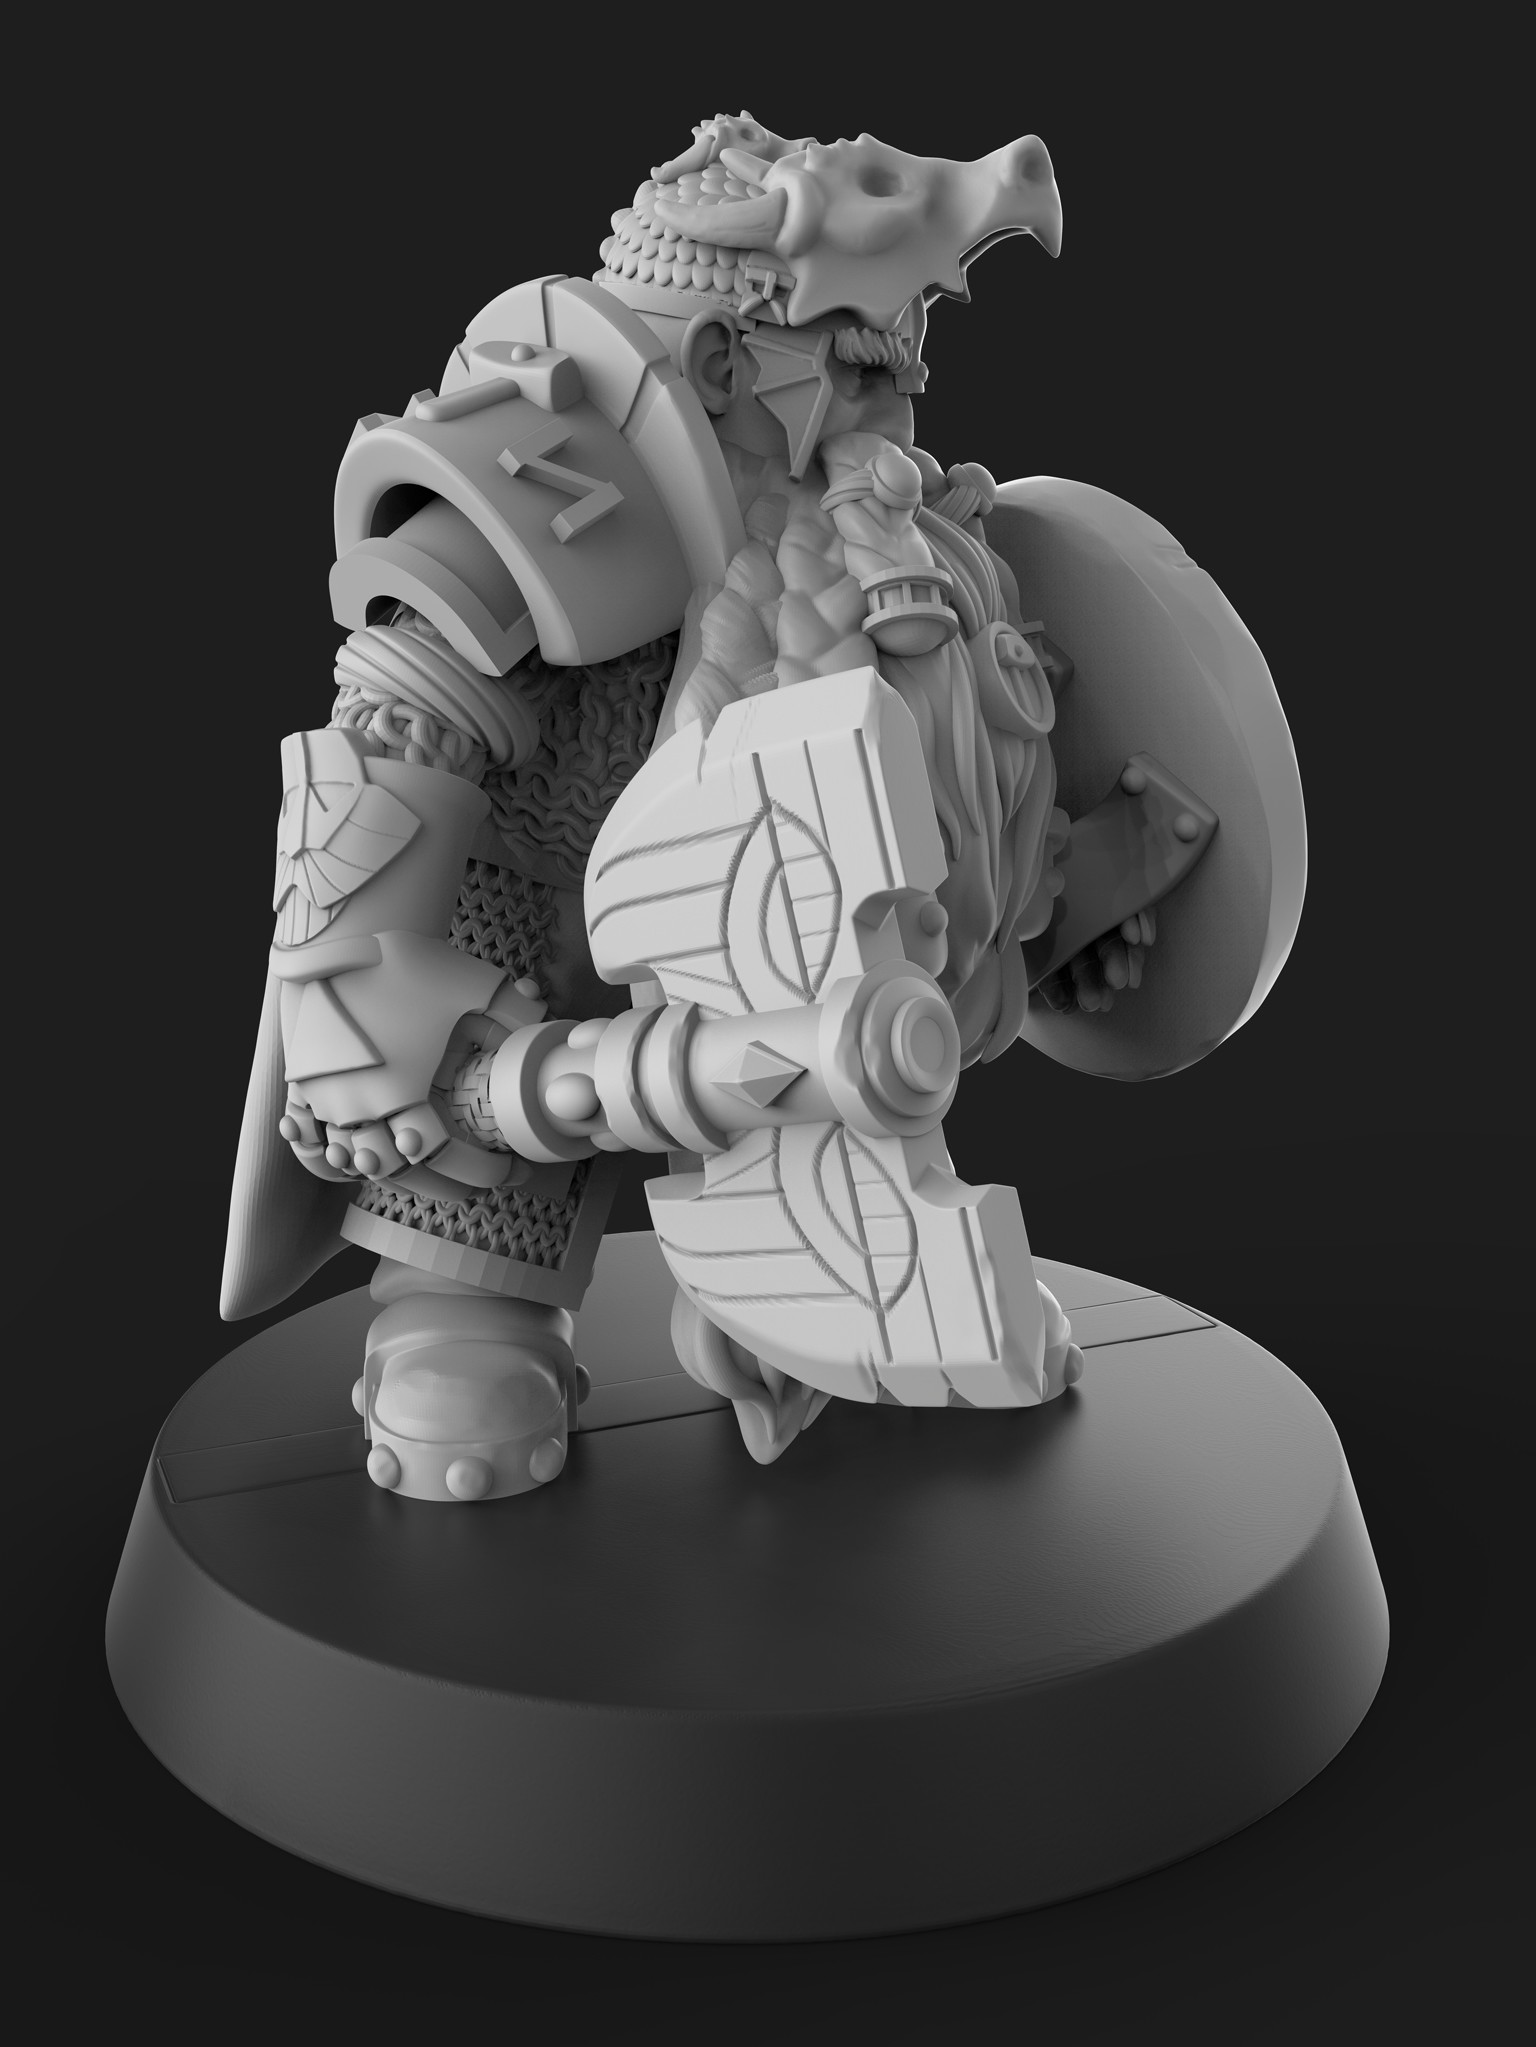 Will higgins dwarf 03 render